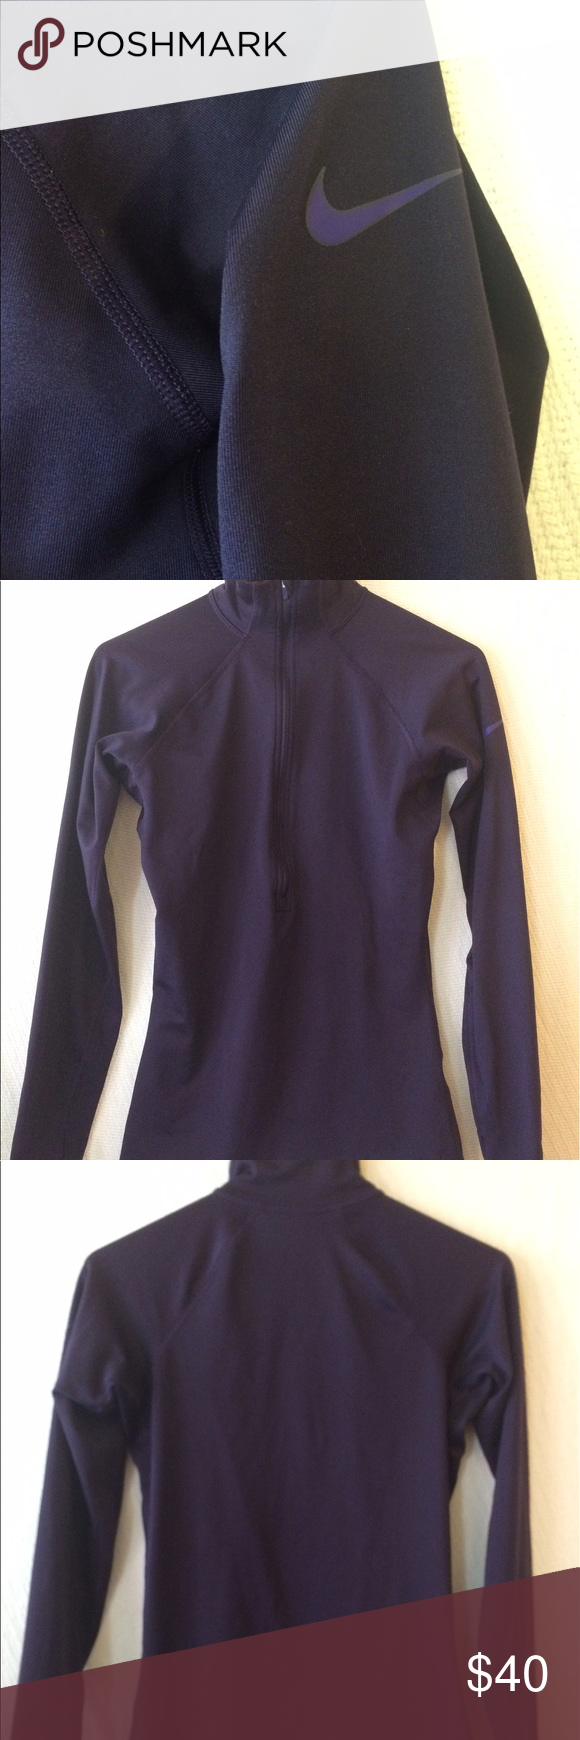 "Nike Pro Hyperwarm Half Zip Women's Running Shirt Nike Pro Hyperwarm Half-Zip women's Running Shirt.  Size  small; 15.5"" width, 25"" length. 88% polyester, 12% spandex.  Very good used condition.  Very pretty deep purple color, thumb holes at cuffs, Nike symbol has no cracking. Nike Tops Sweatshirts & Hoodies"